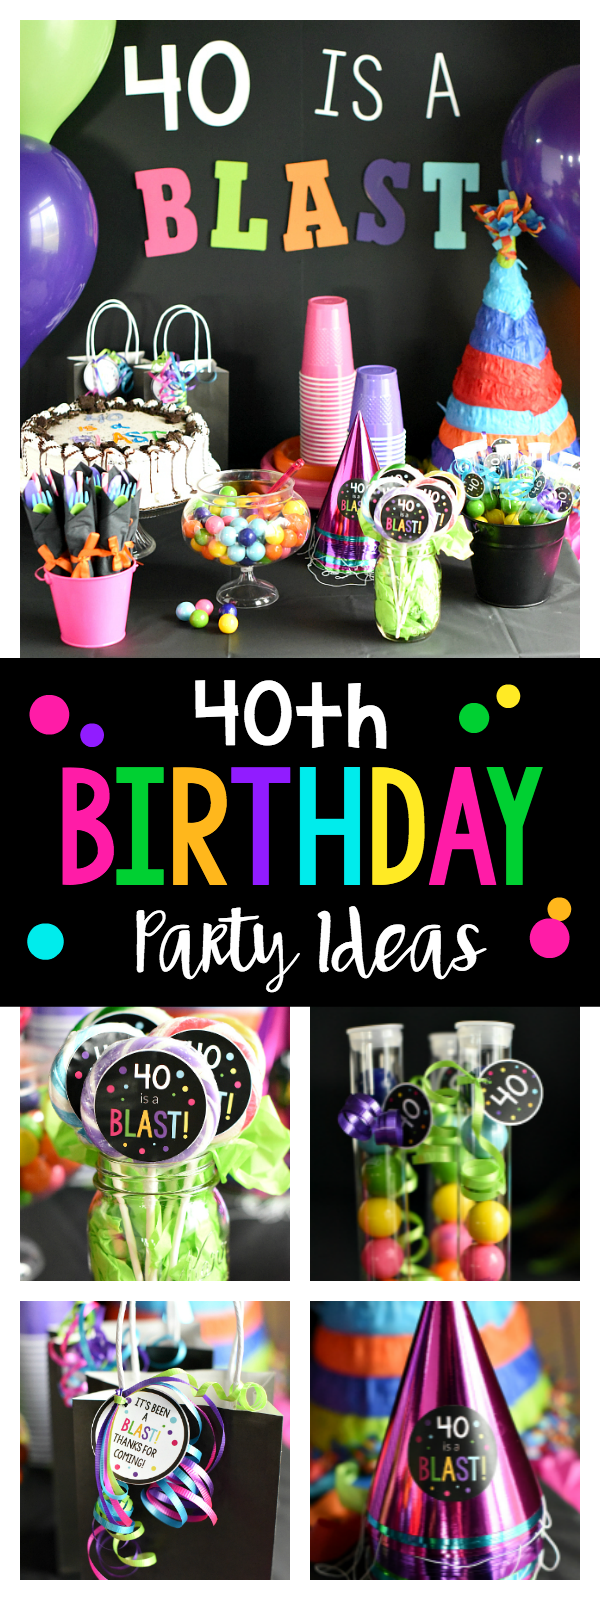 Ideas For A Throwing Fun 40th Birthday Party Decorations Favors Games